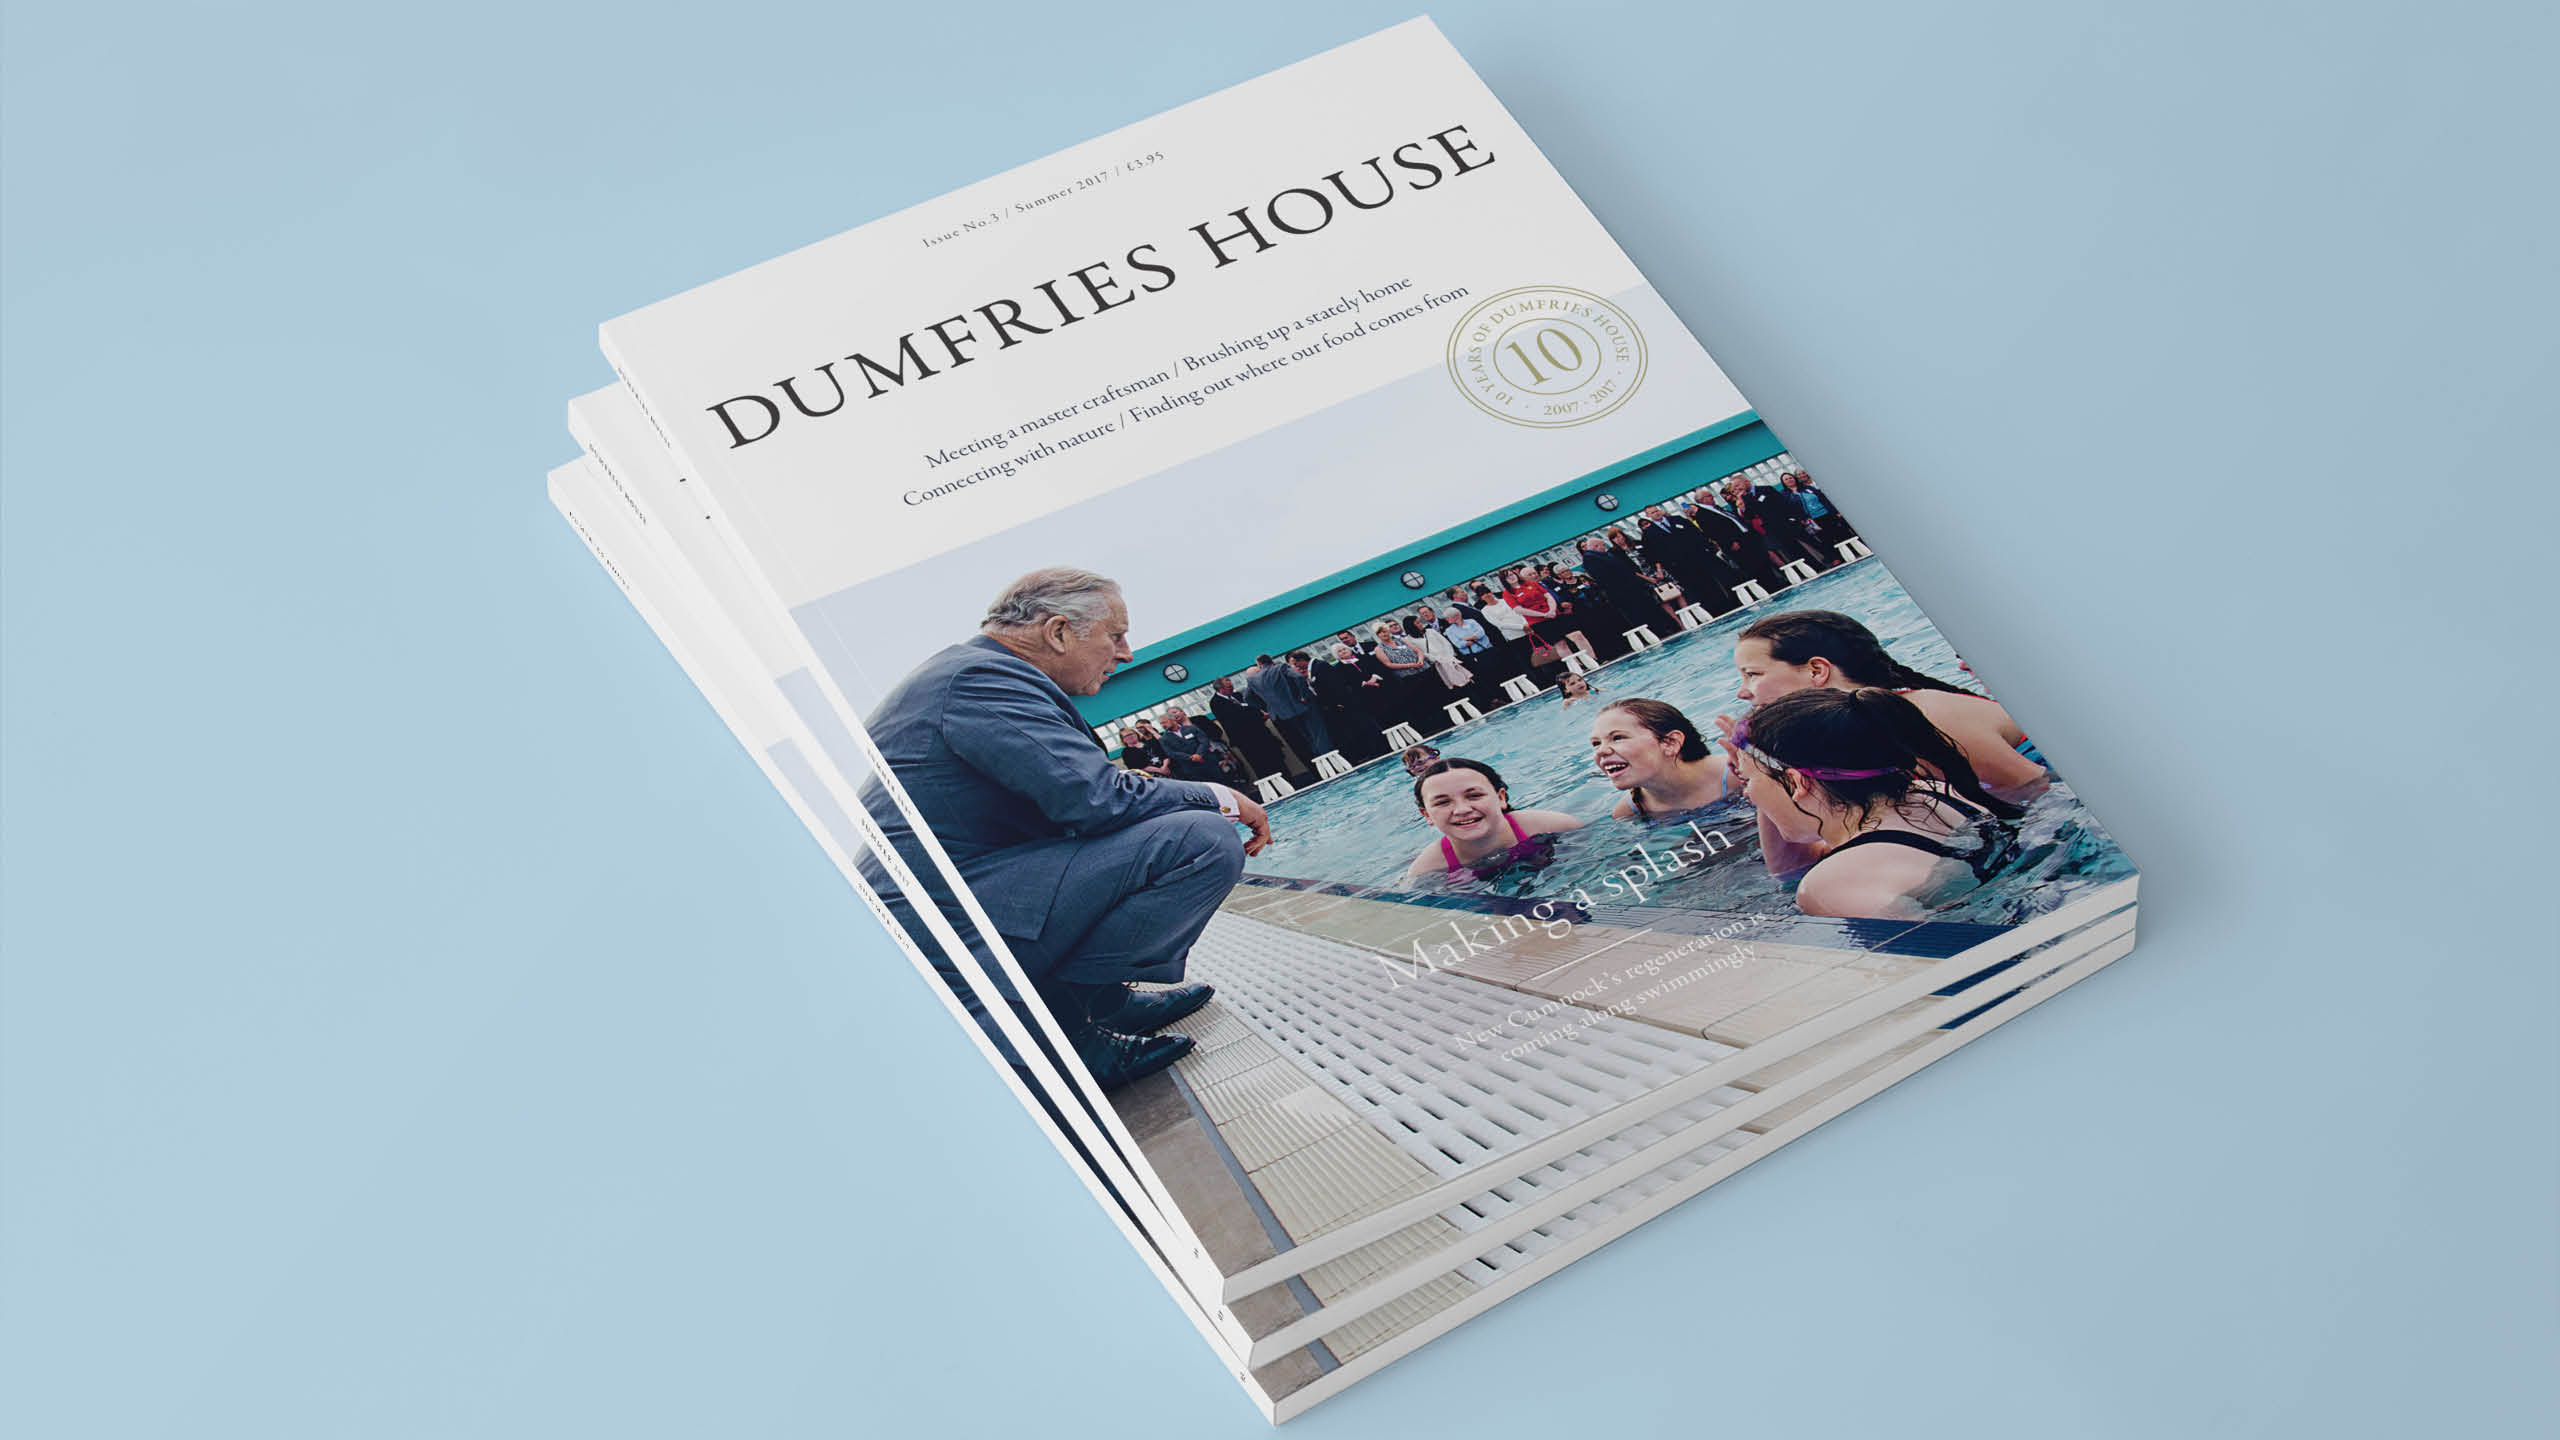 Dumfries House magazine Issue 3 Summer 2017